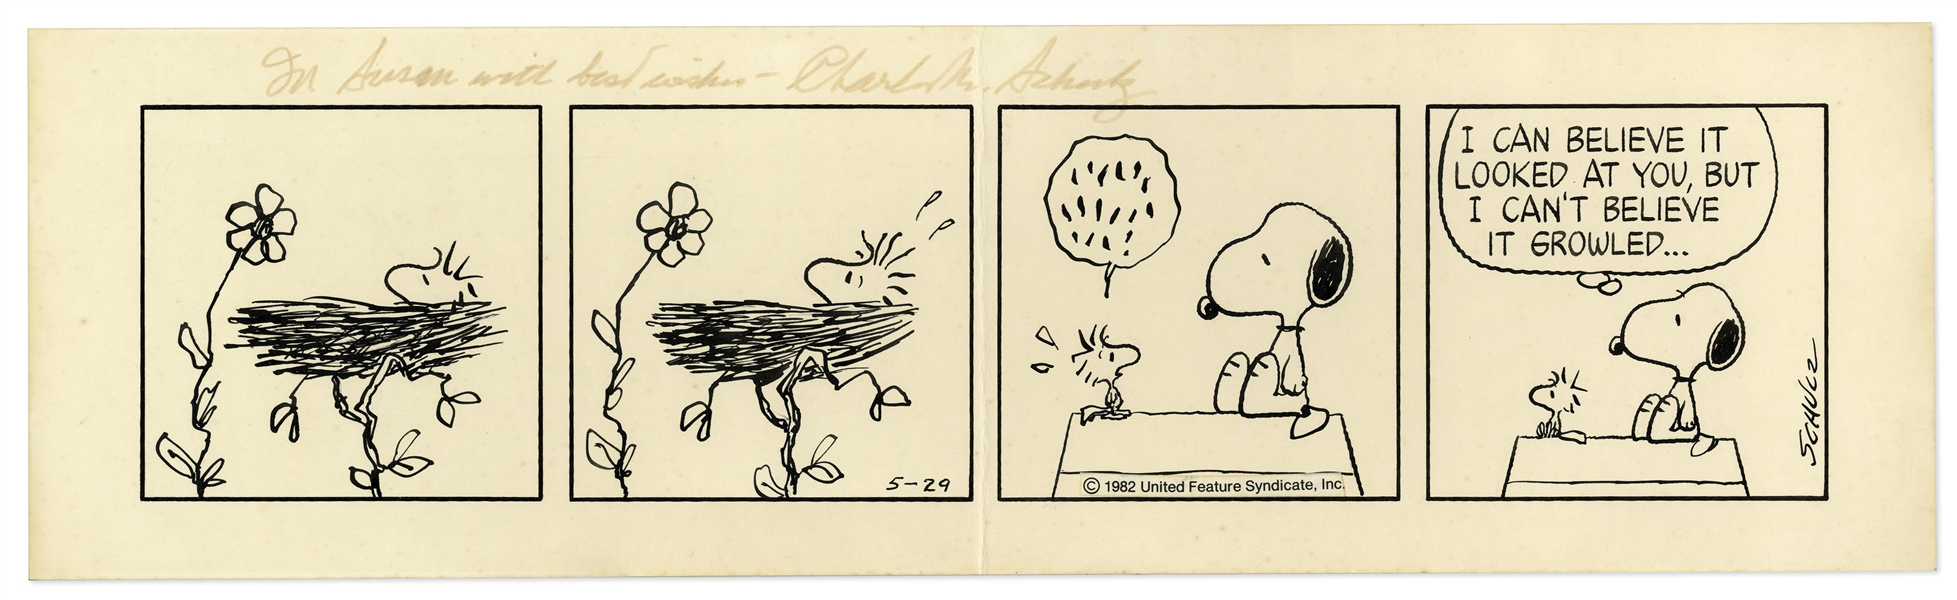 Snoopy & Woodstock ''Peanuts'' Strip Hand Drawn by Charles Schulz